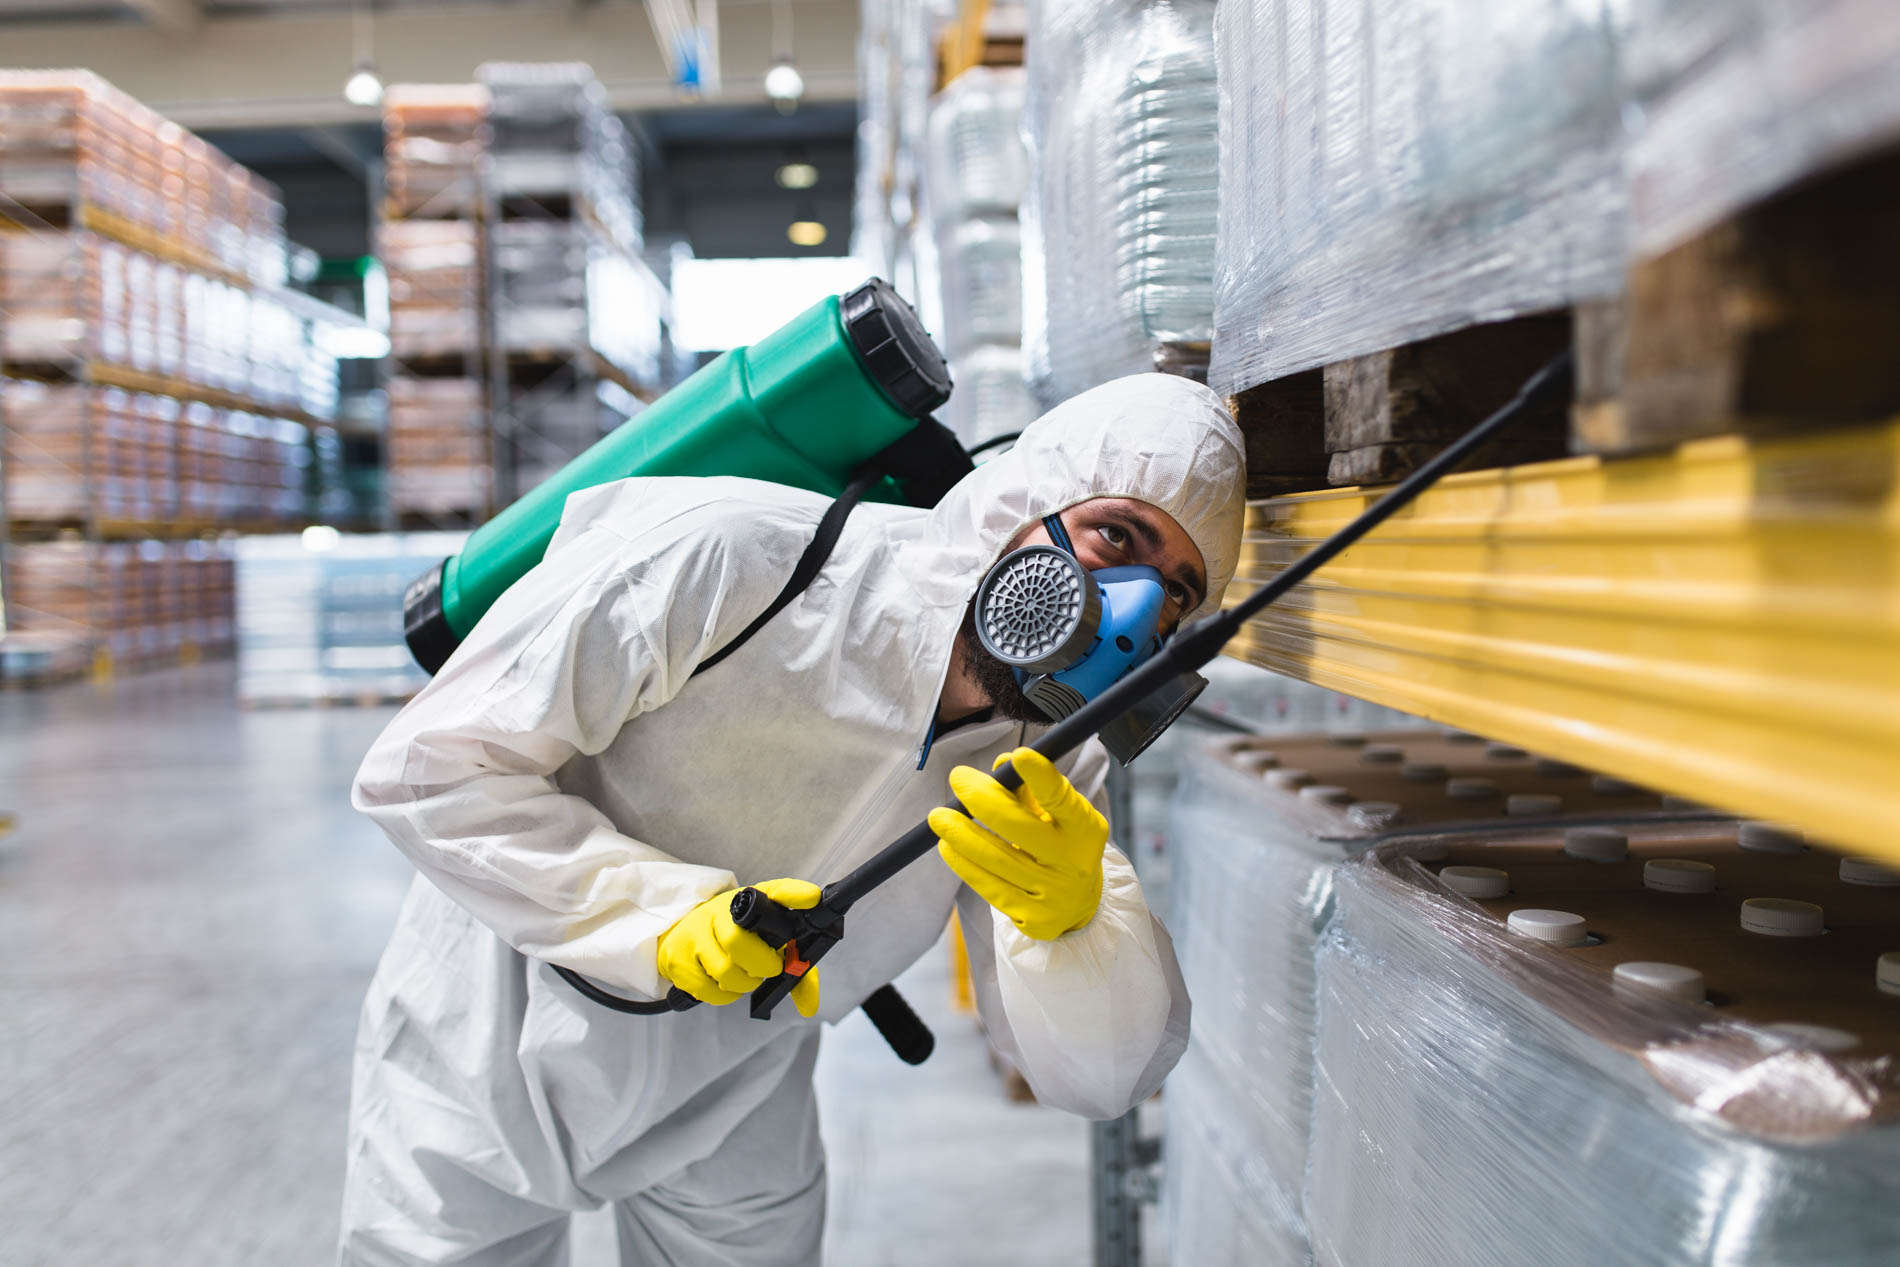 Pest,Control,Worker,Hand,Holding,Sprayer,For,Spraying,Pesticides,In